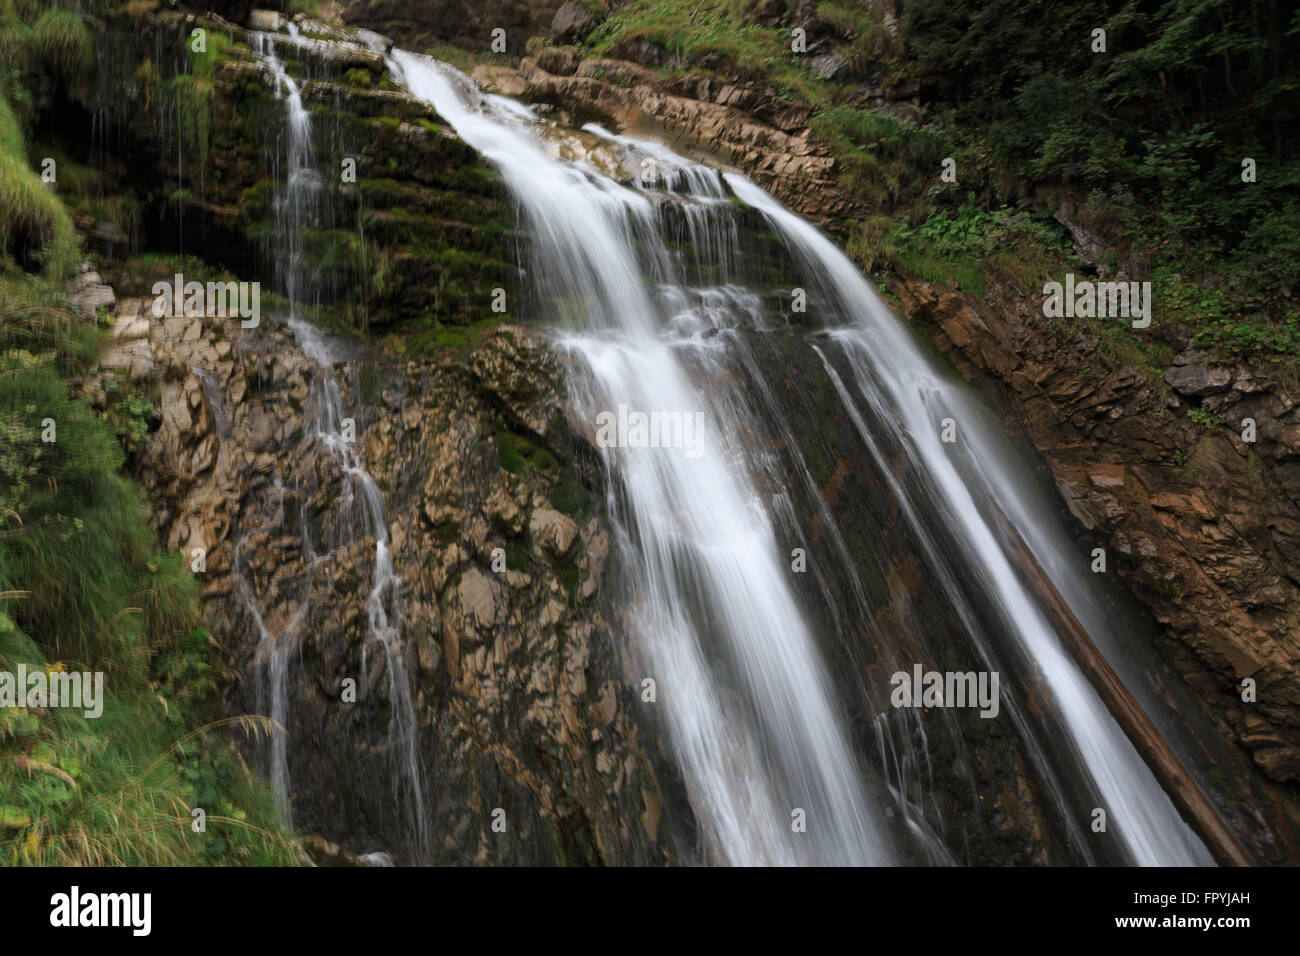 A photograph of Giessbach Falls on Lake Brienz in the Bernese Oberland area of Switzerland. Stock Photo